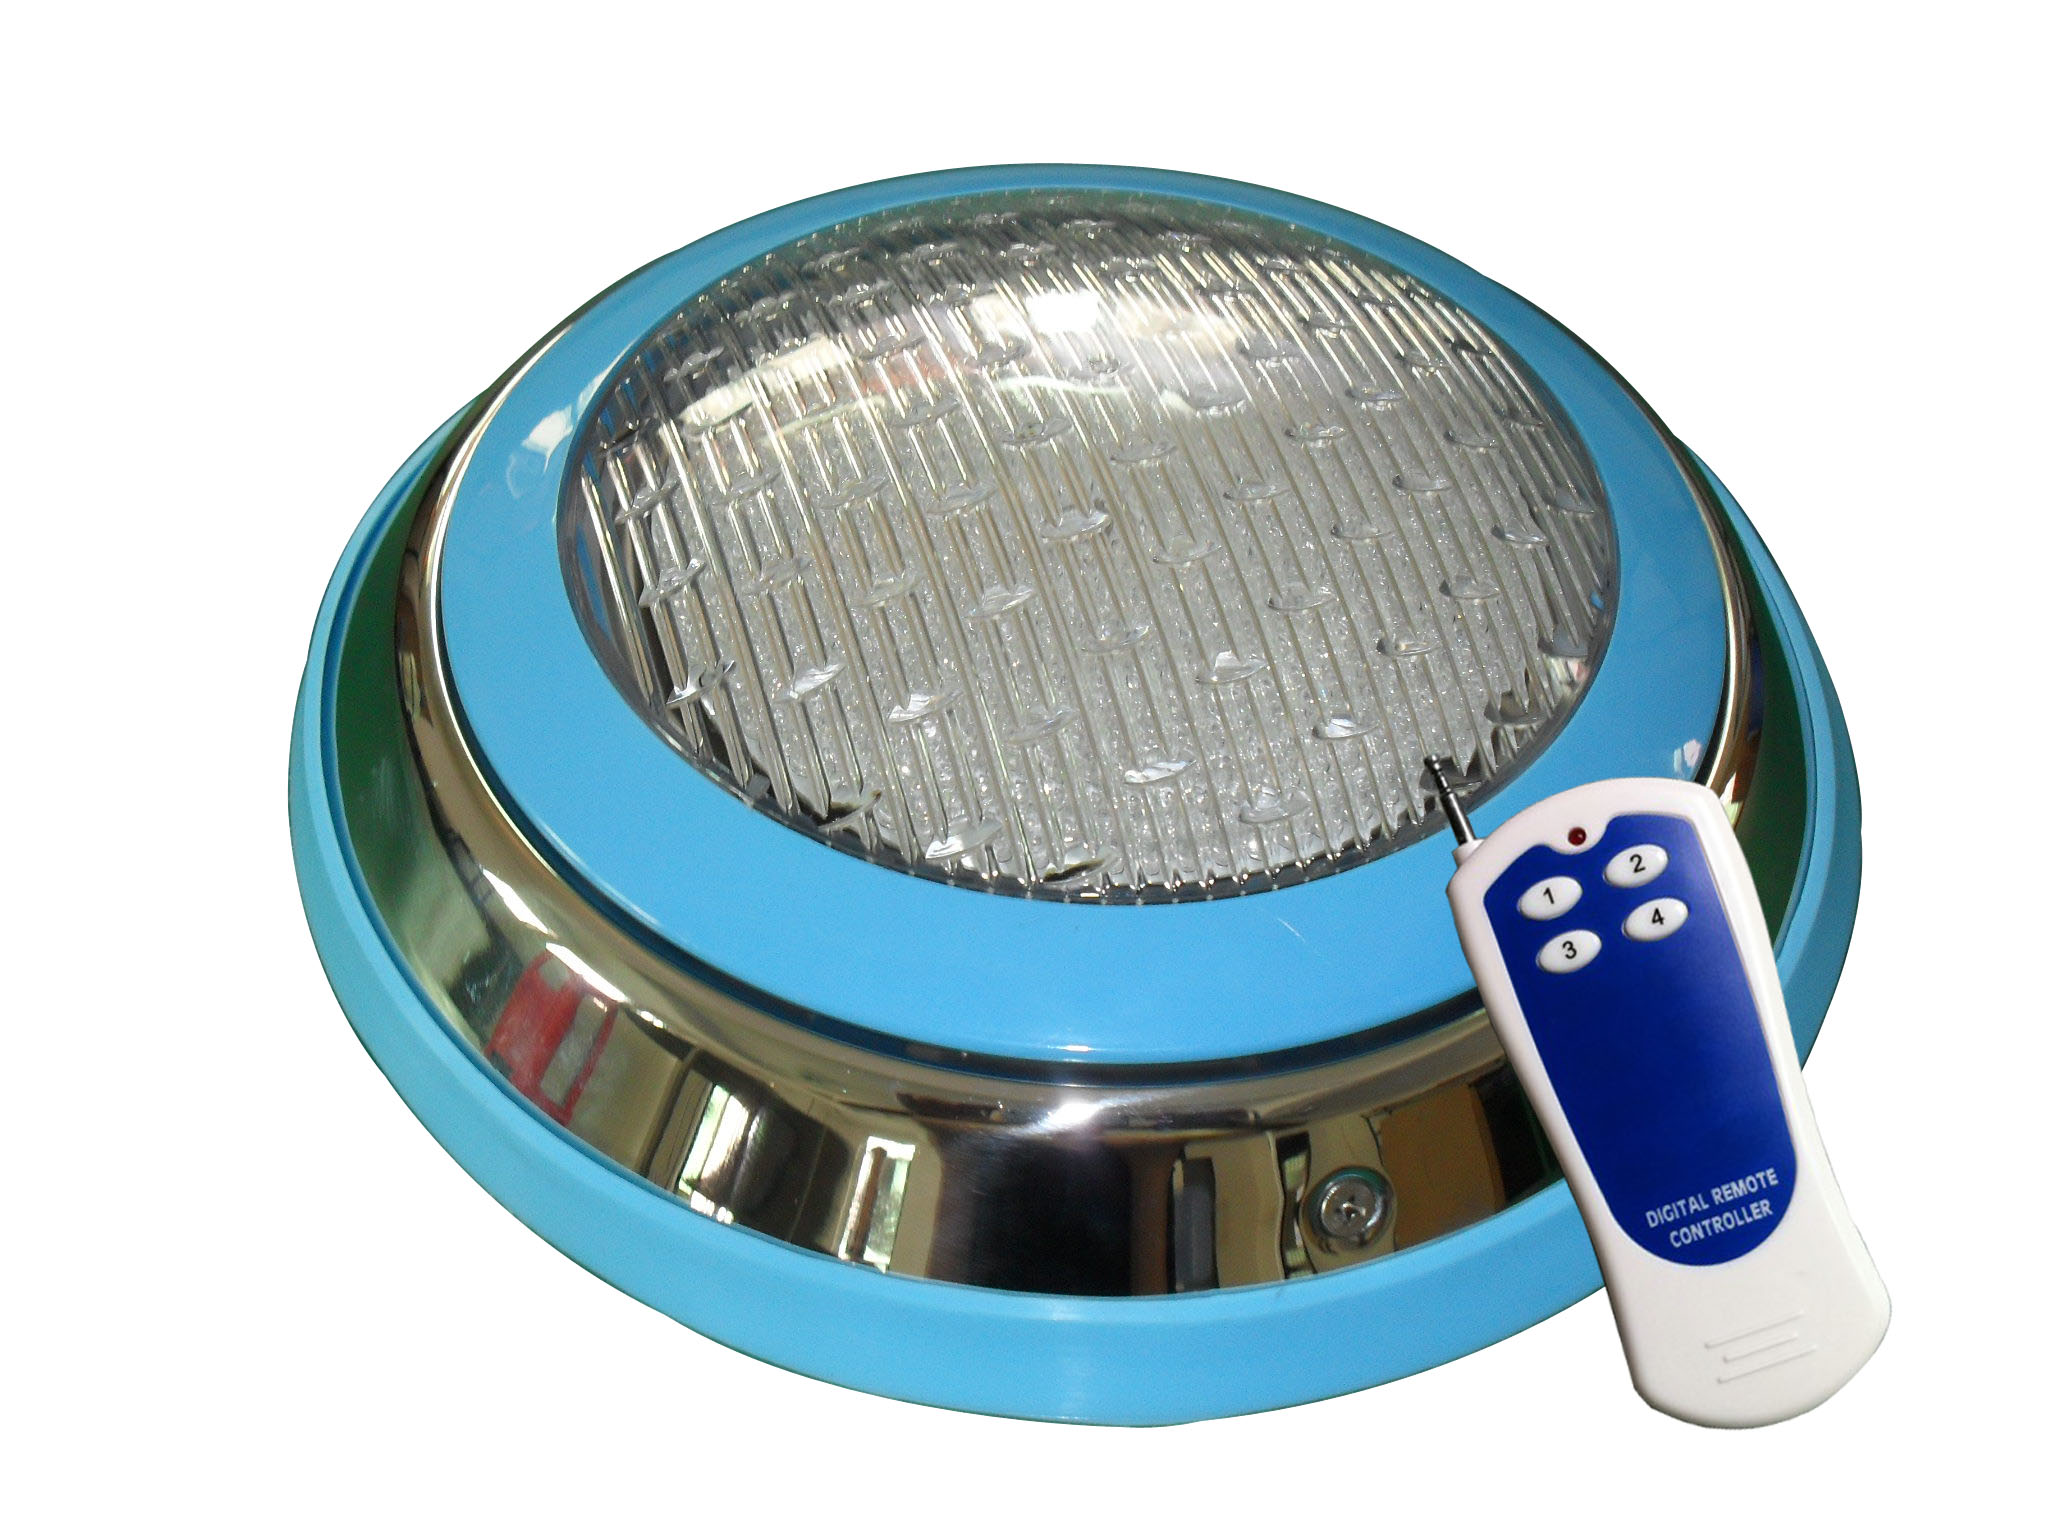 Led Swimming Pool Light Bulb Replacement In Ground